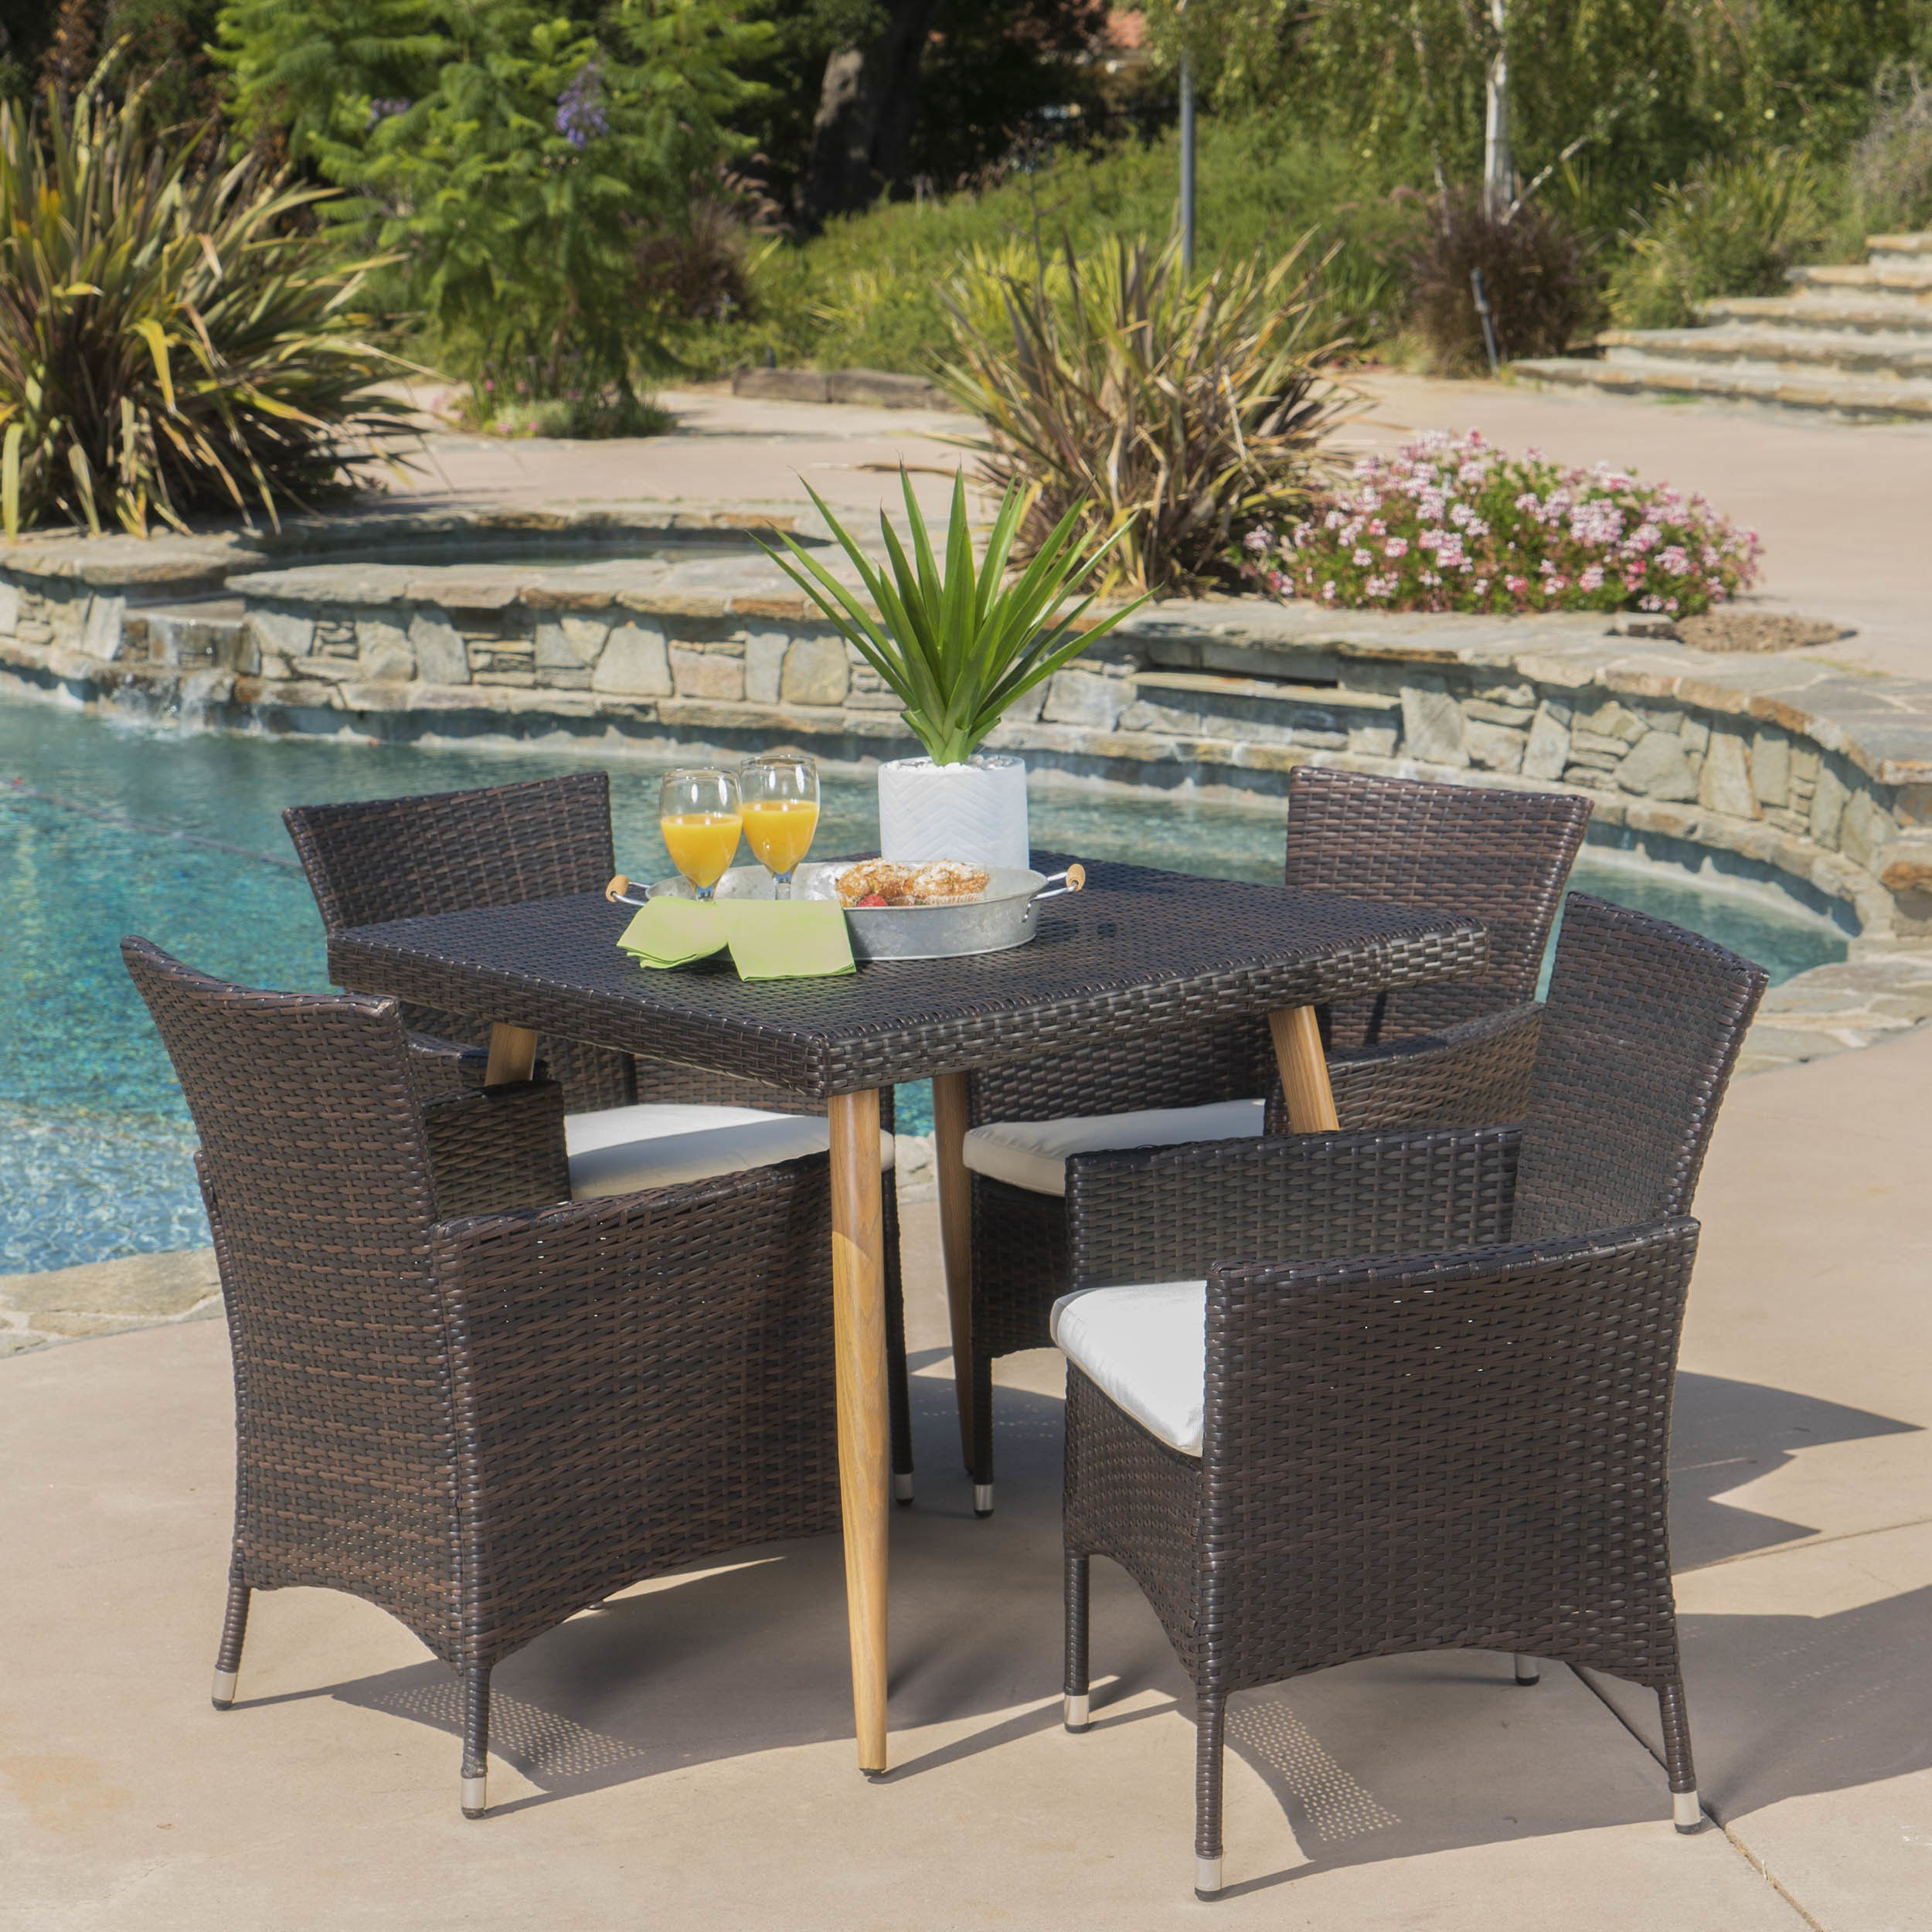 Christopher Knight Home Carpinteria Outdoor 5-piece Square Dining Set with Cushions by